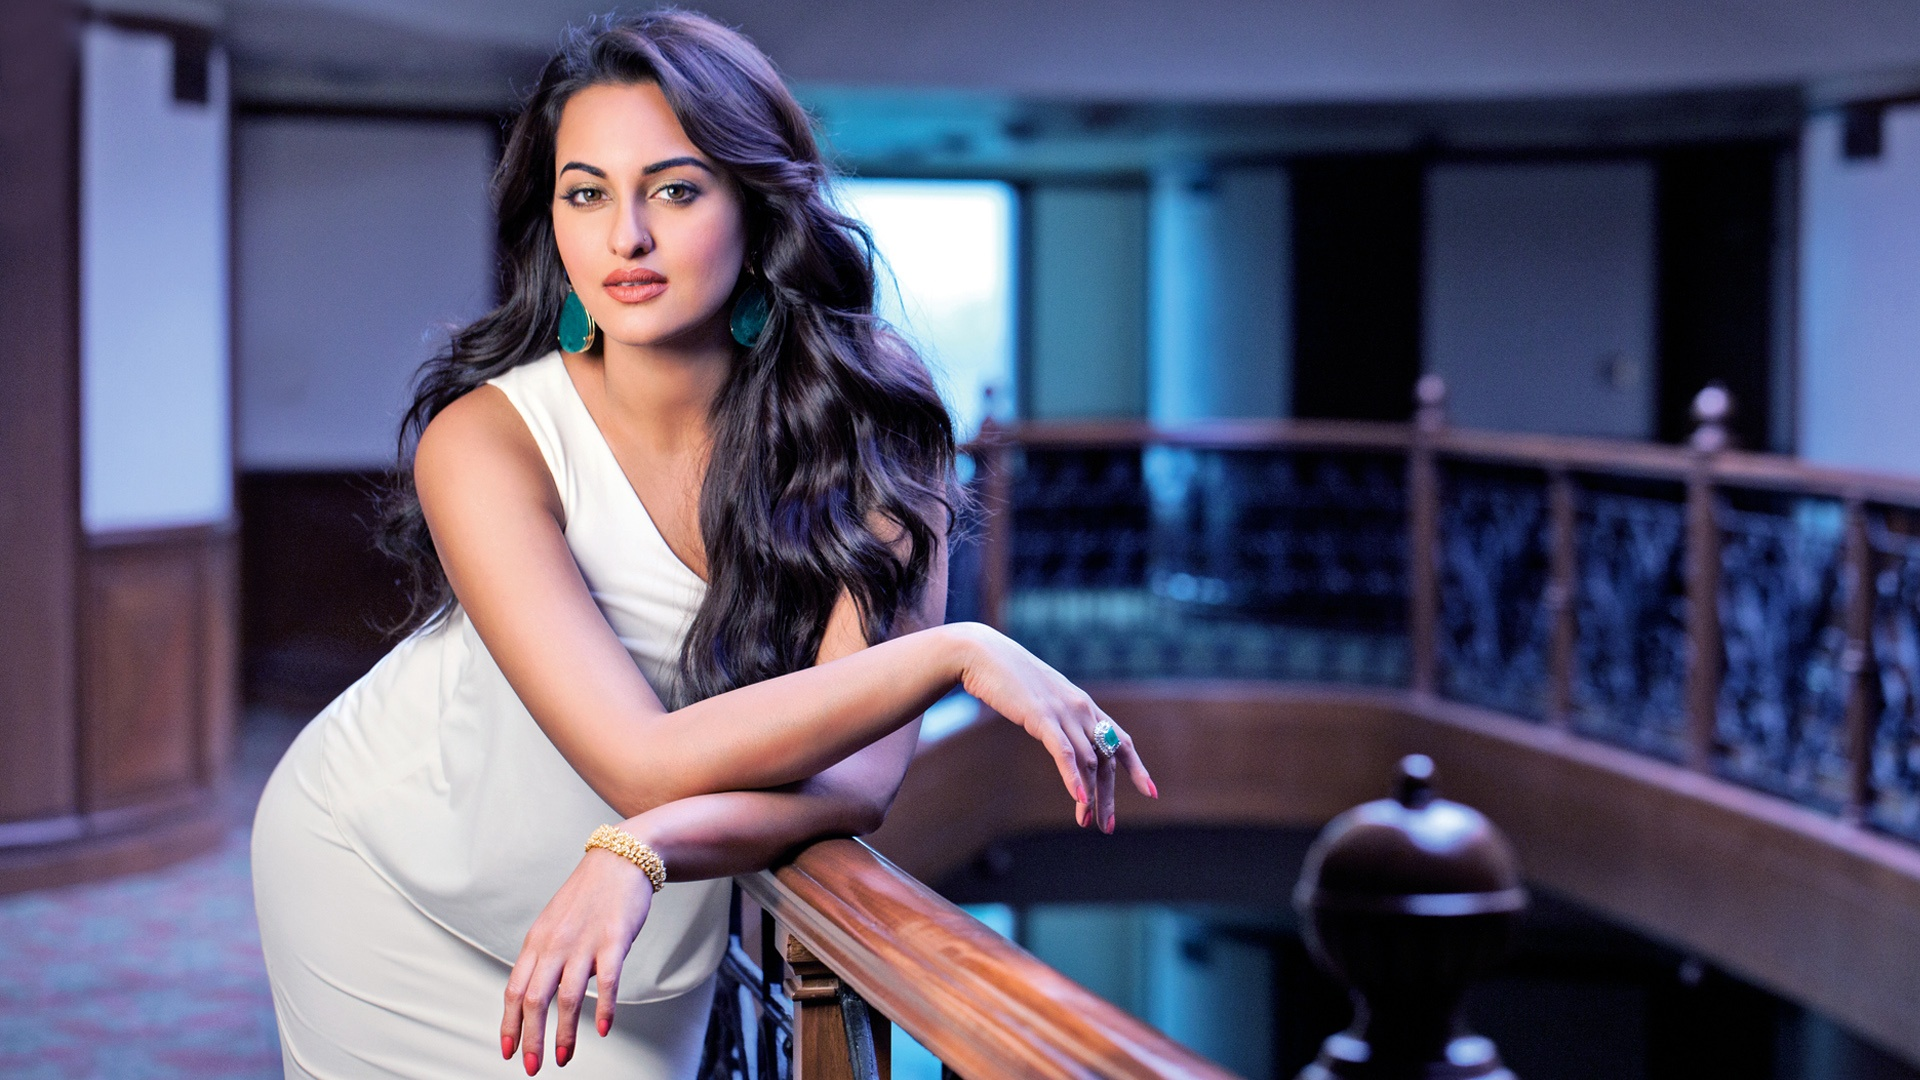 Actress Sonakshi Sinha Wallpapers In Jpg Format For Free Download